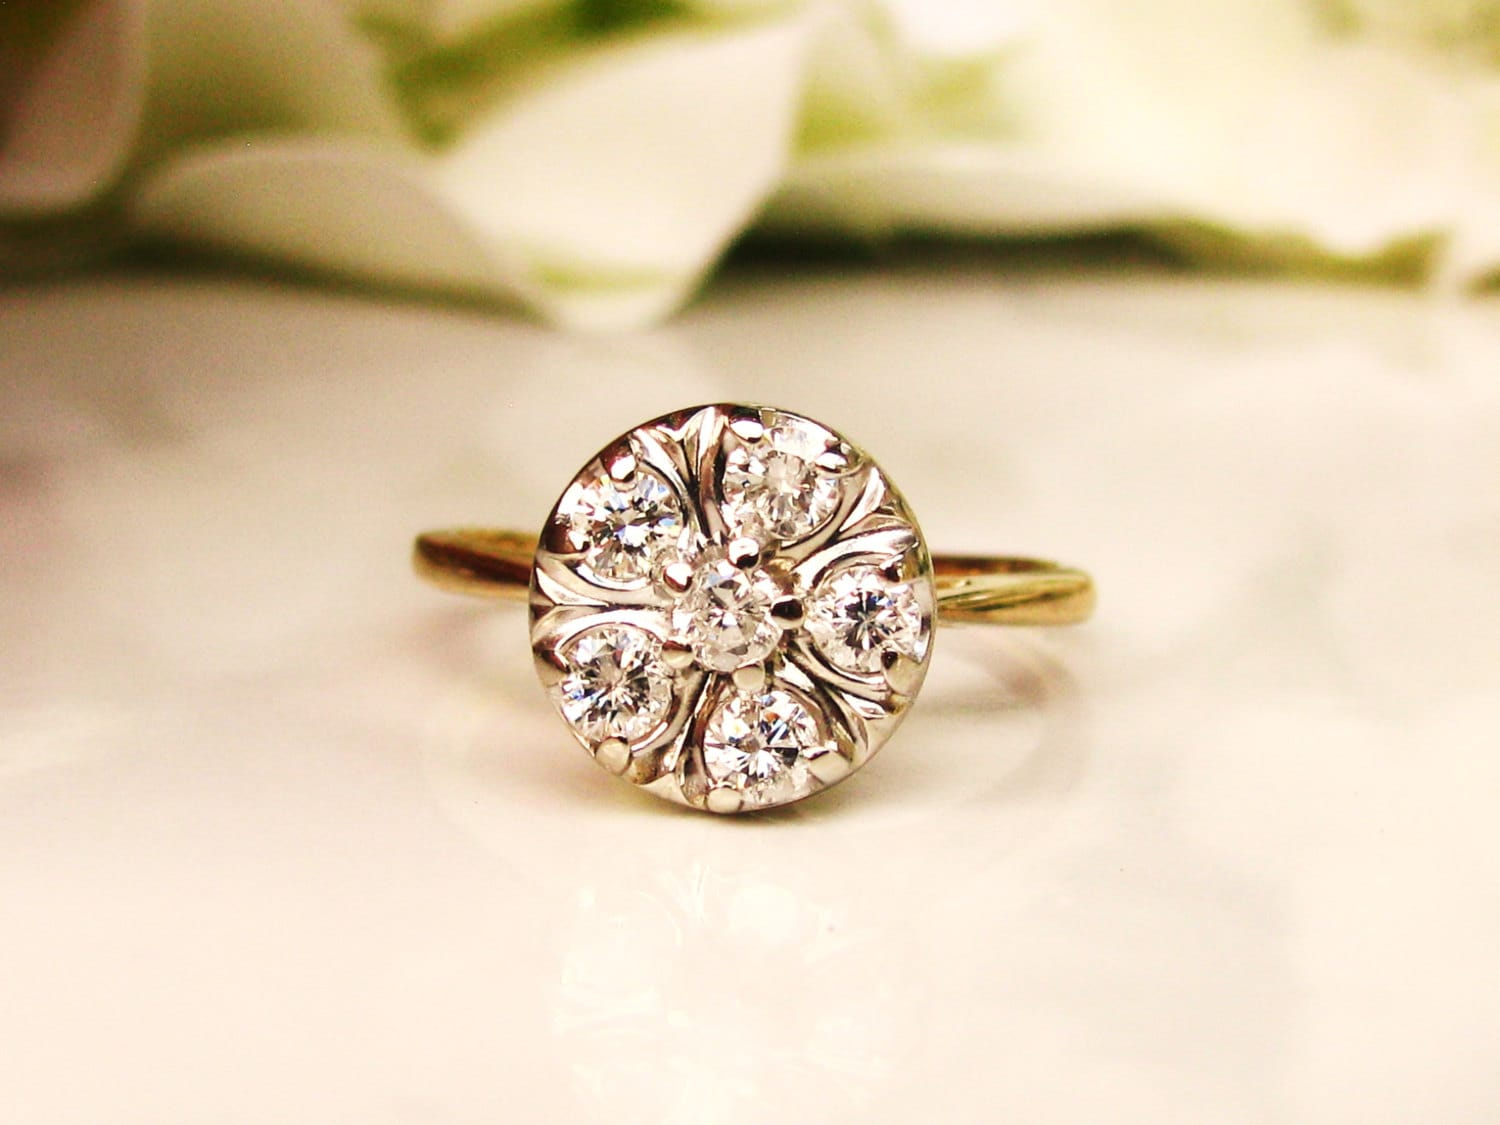 settings rings engagement in daisy product edwardian yellow with diamonds and ring shoulders diamond goldsmiths plain platinum shank set gold cluster an